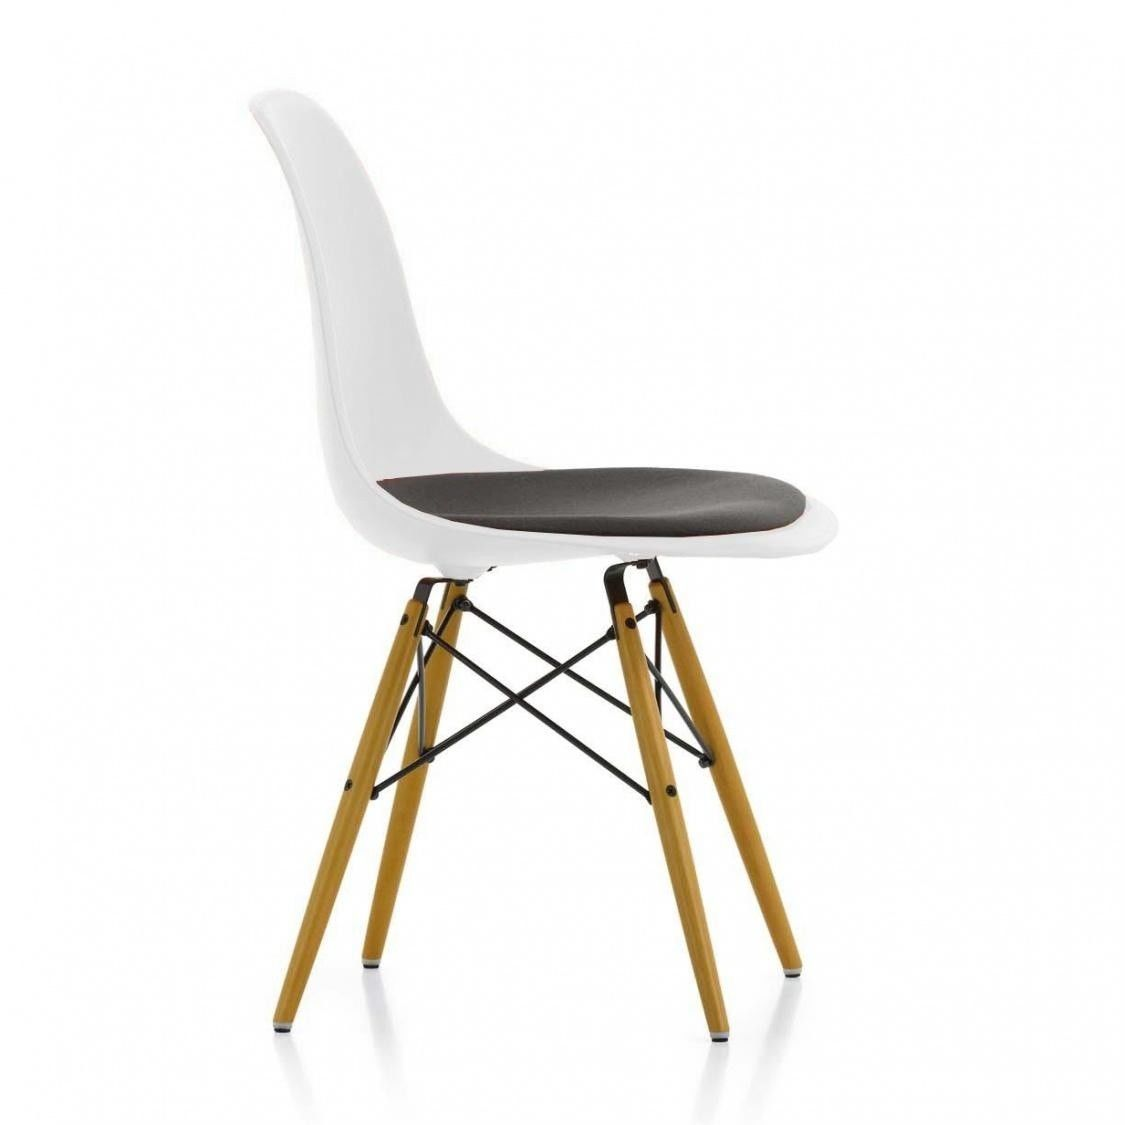 Eames plastic side chair dsw gepolstert h43cm vitra for Teppich vitra